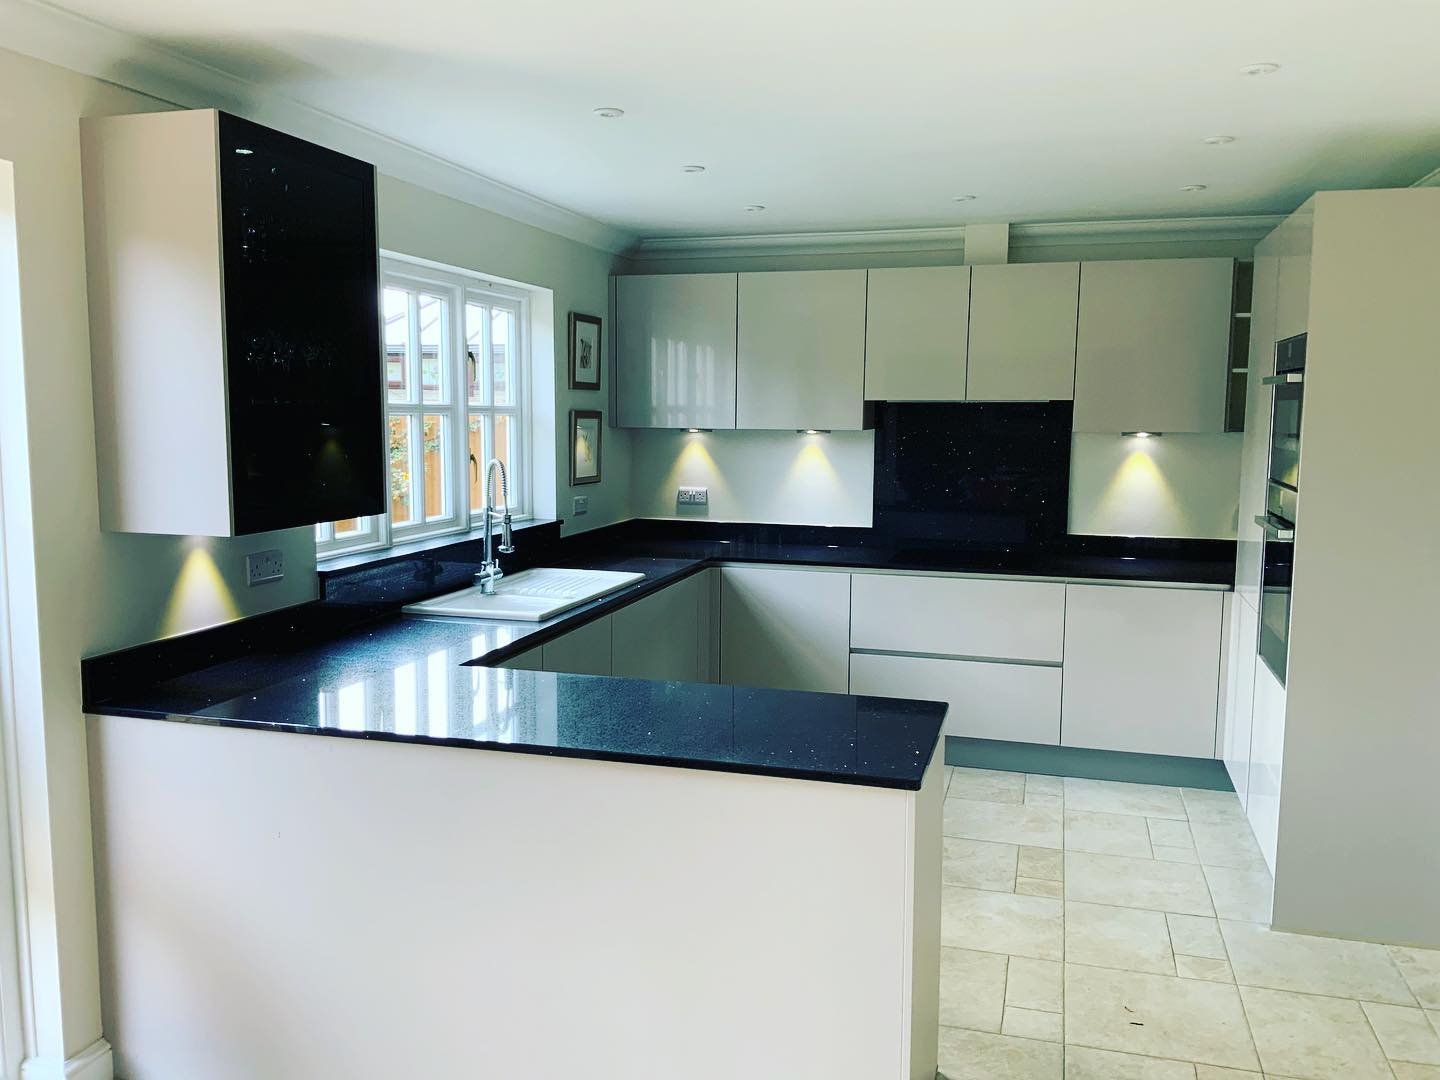 anglia-interiors-kitchen-refit-4